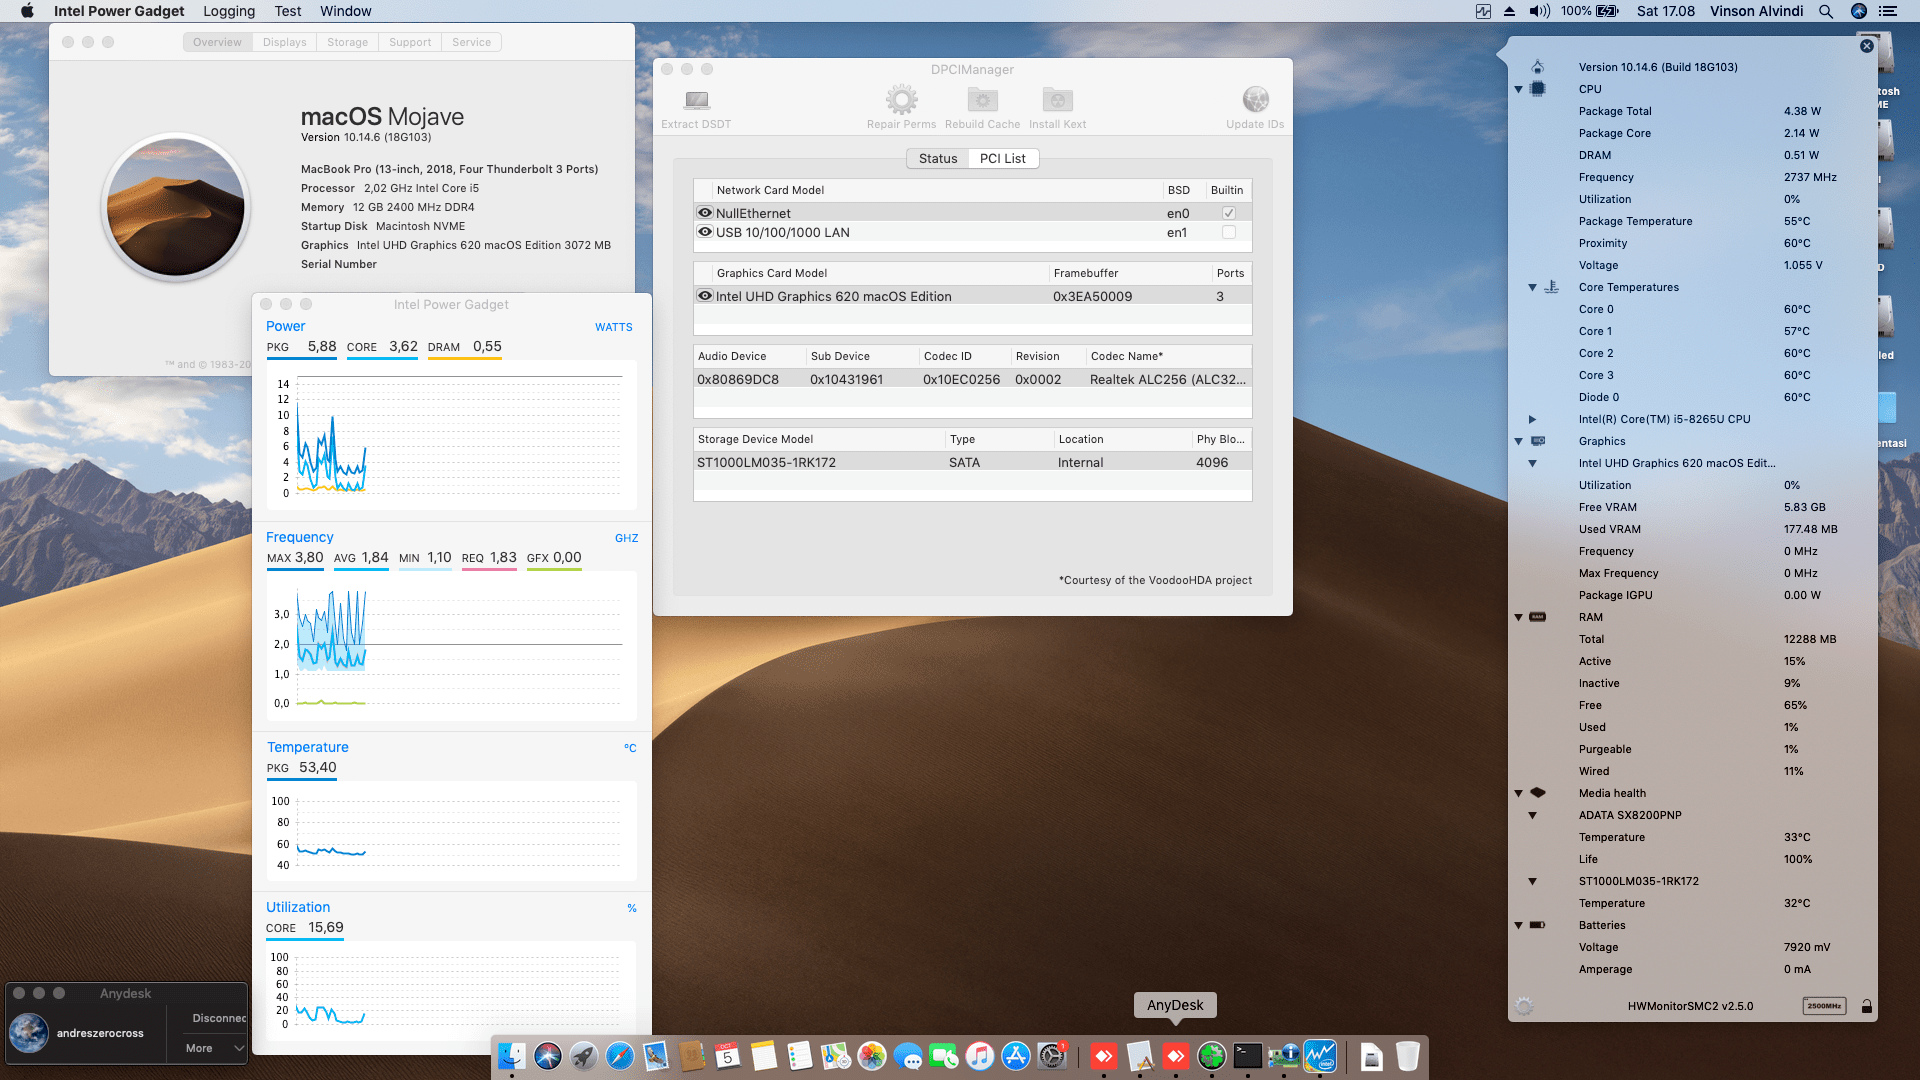 Success Hackintosh macOS Mojave 10.14.6 Build 18G103 at Asus A509FJ-EK502T Intel Core i5